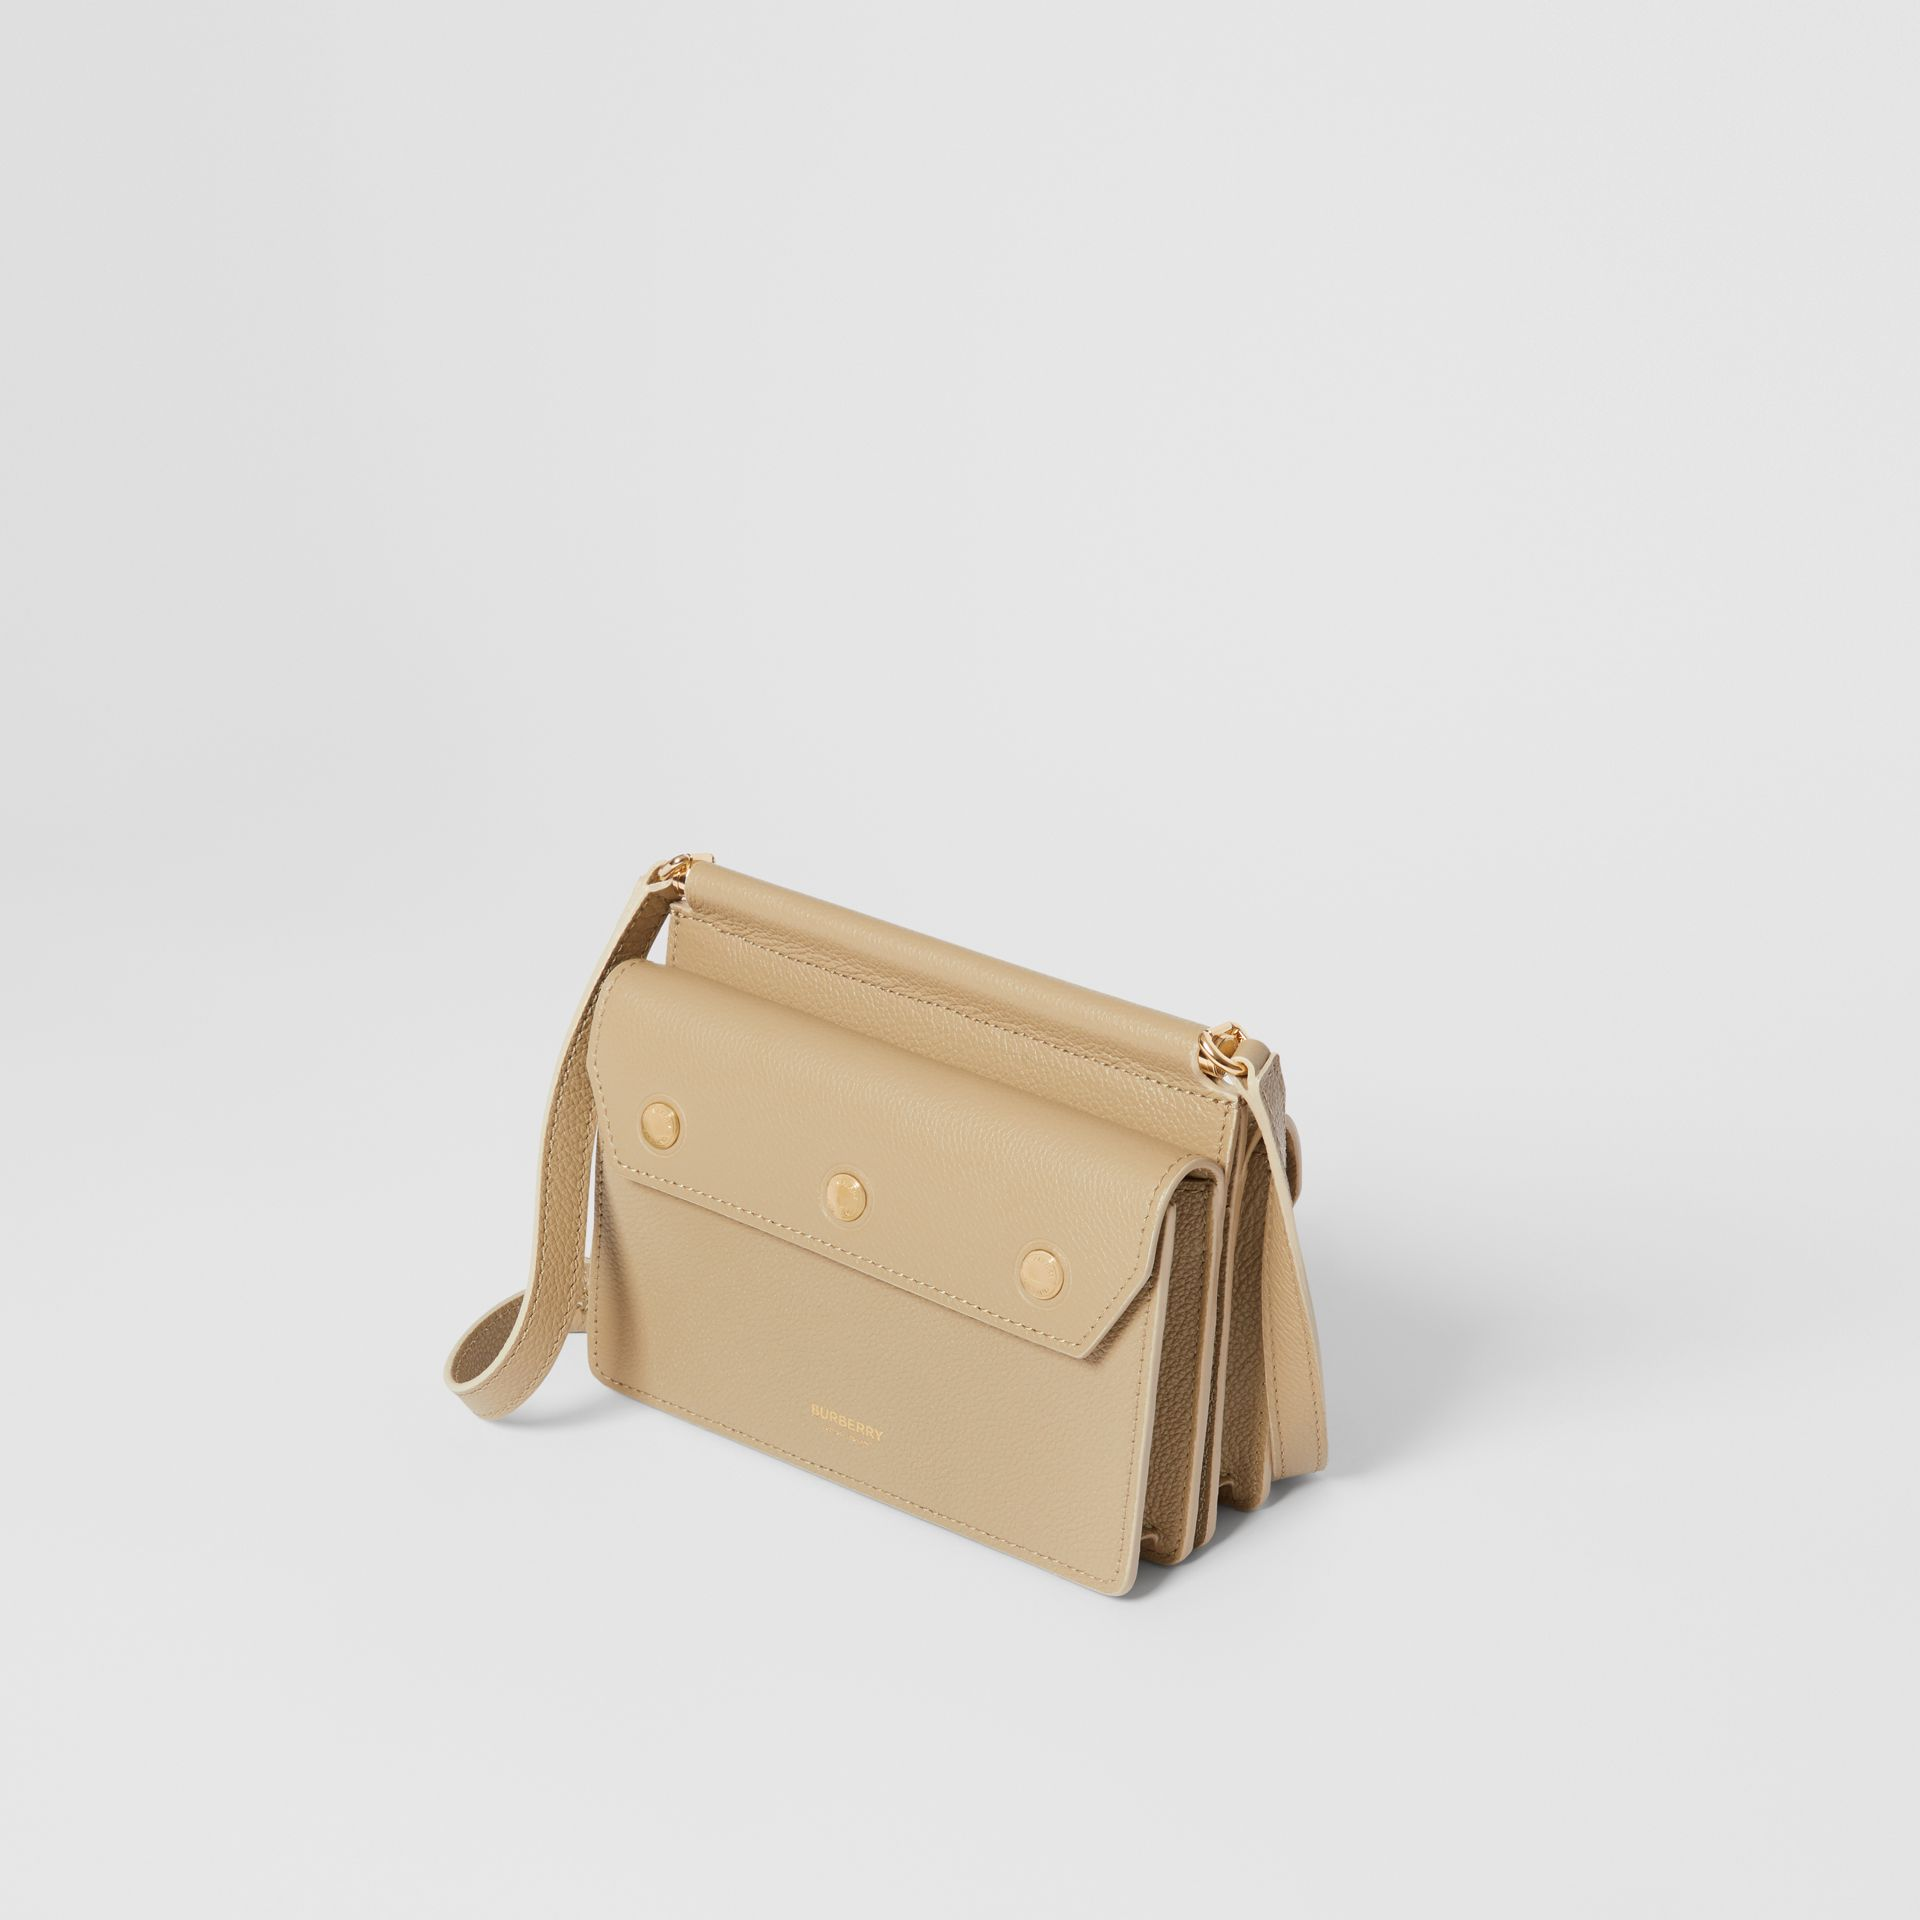 Mini Leather Title Bag in Honey - Women   Burberry United States - gallery image 3